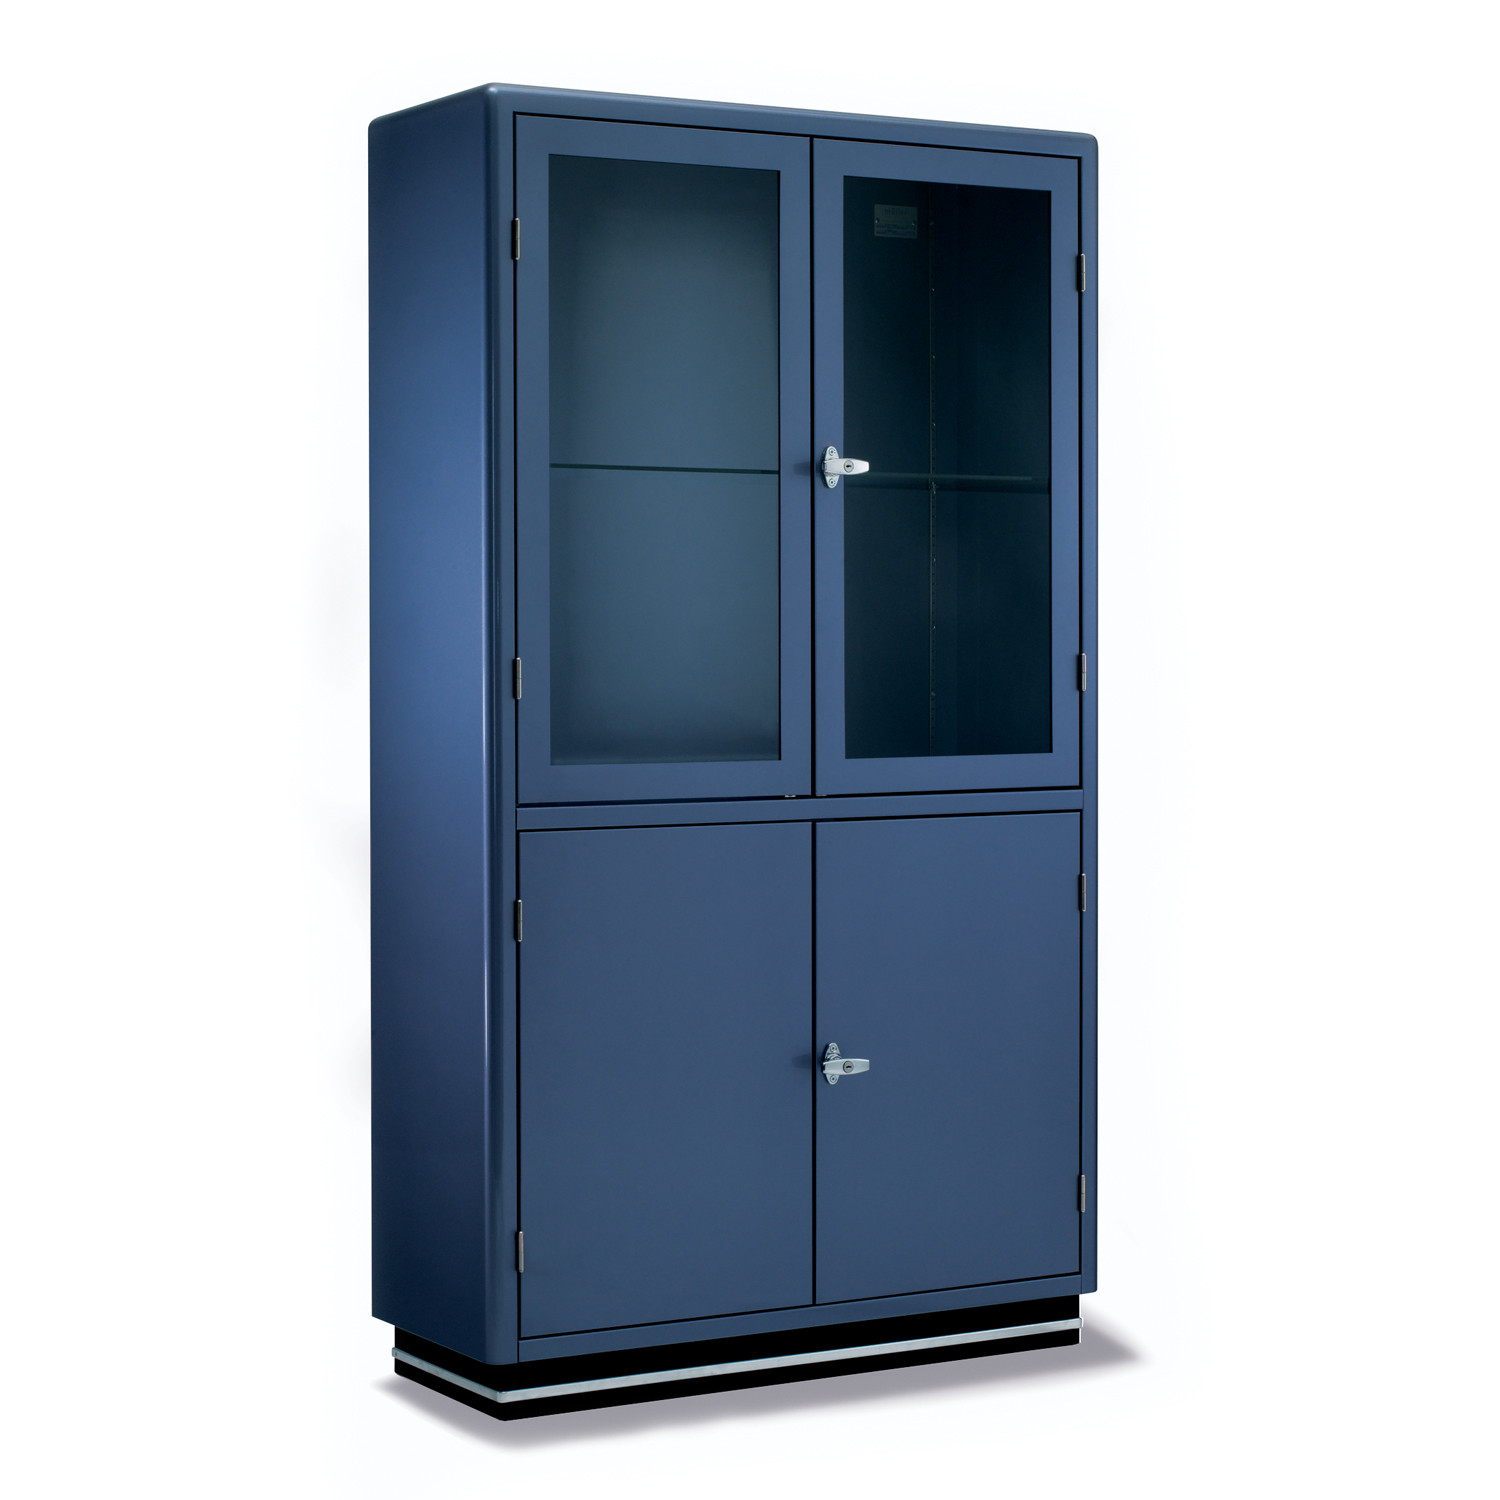 SB 424 Classic Line Office Storage Cabinet